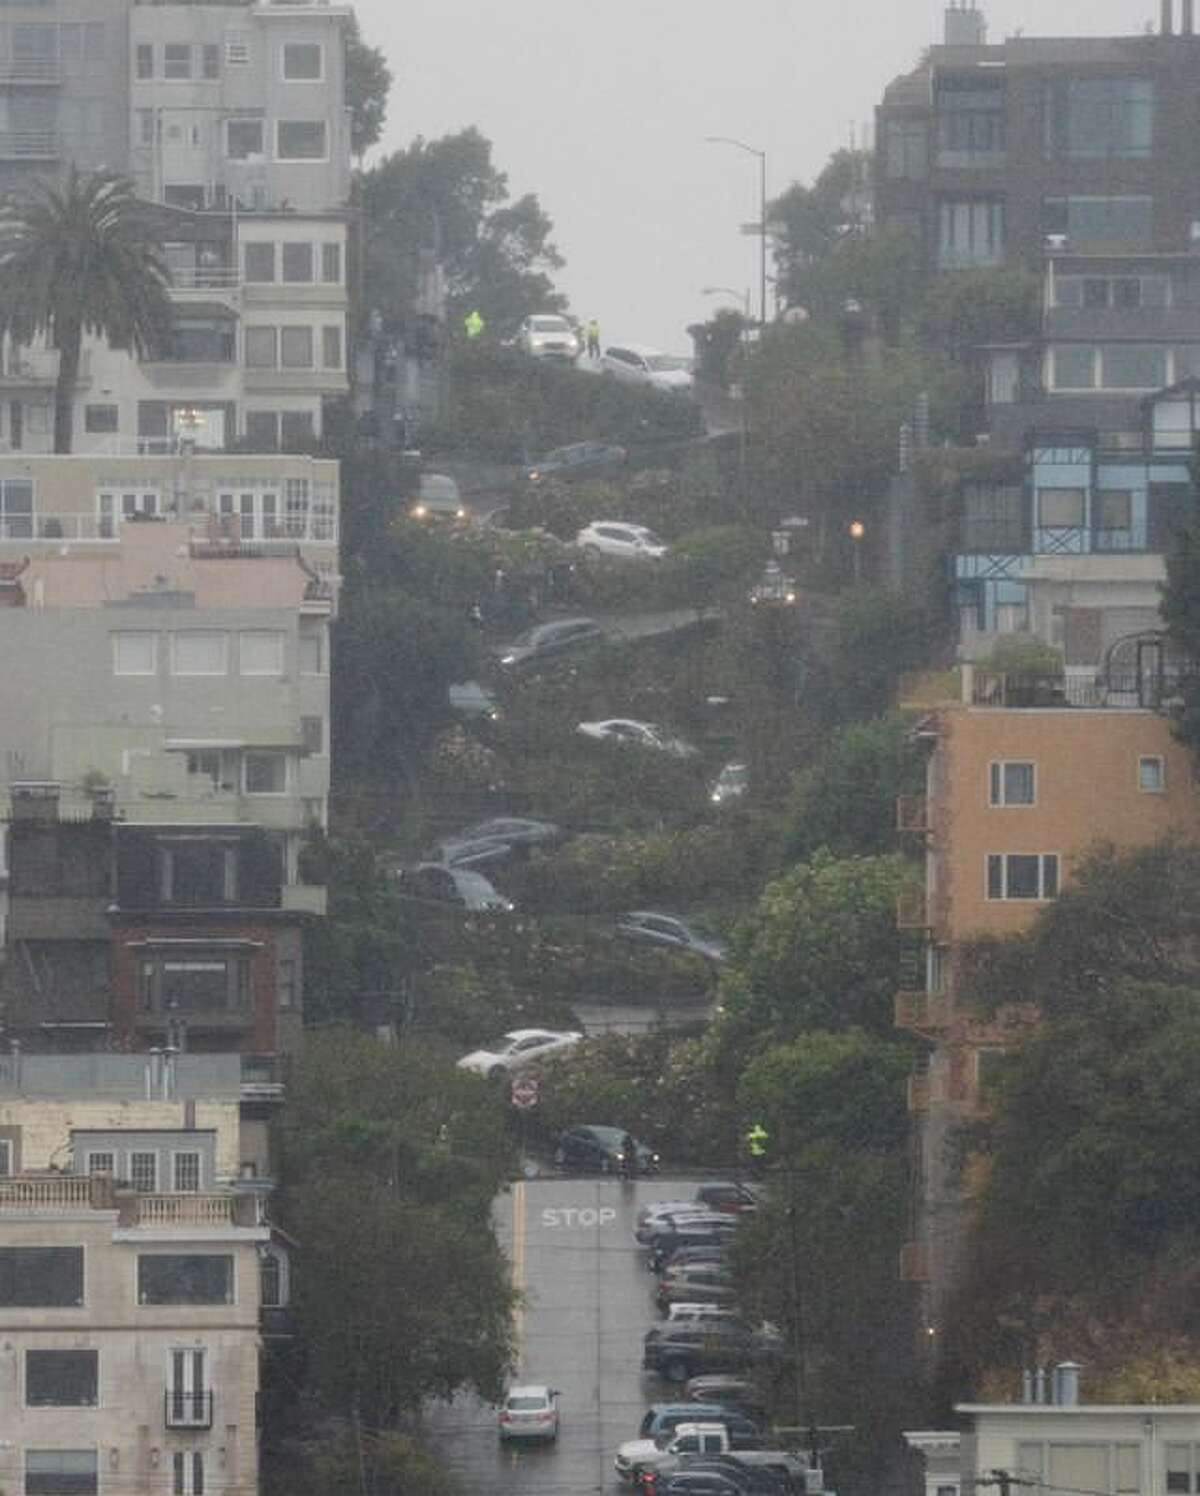 @albertjonlee photographed cars making their way down Lombard Street during a rain storm on Jan 16, 2020.